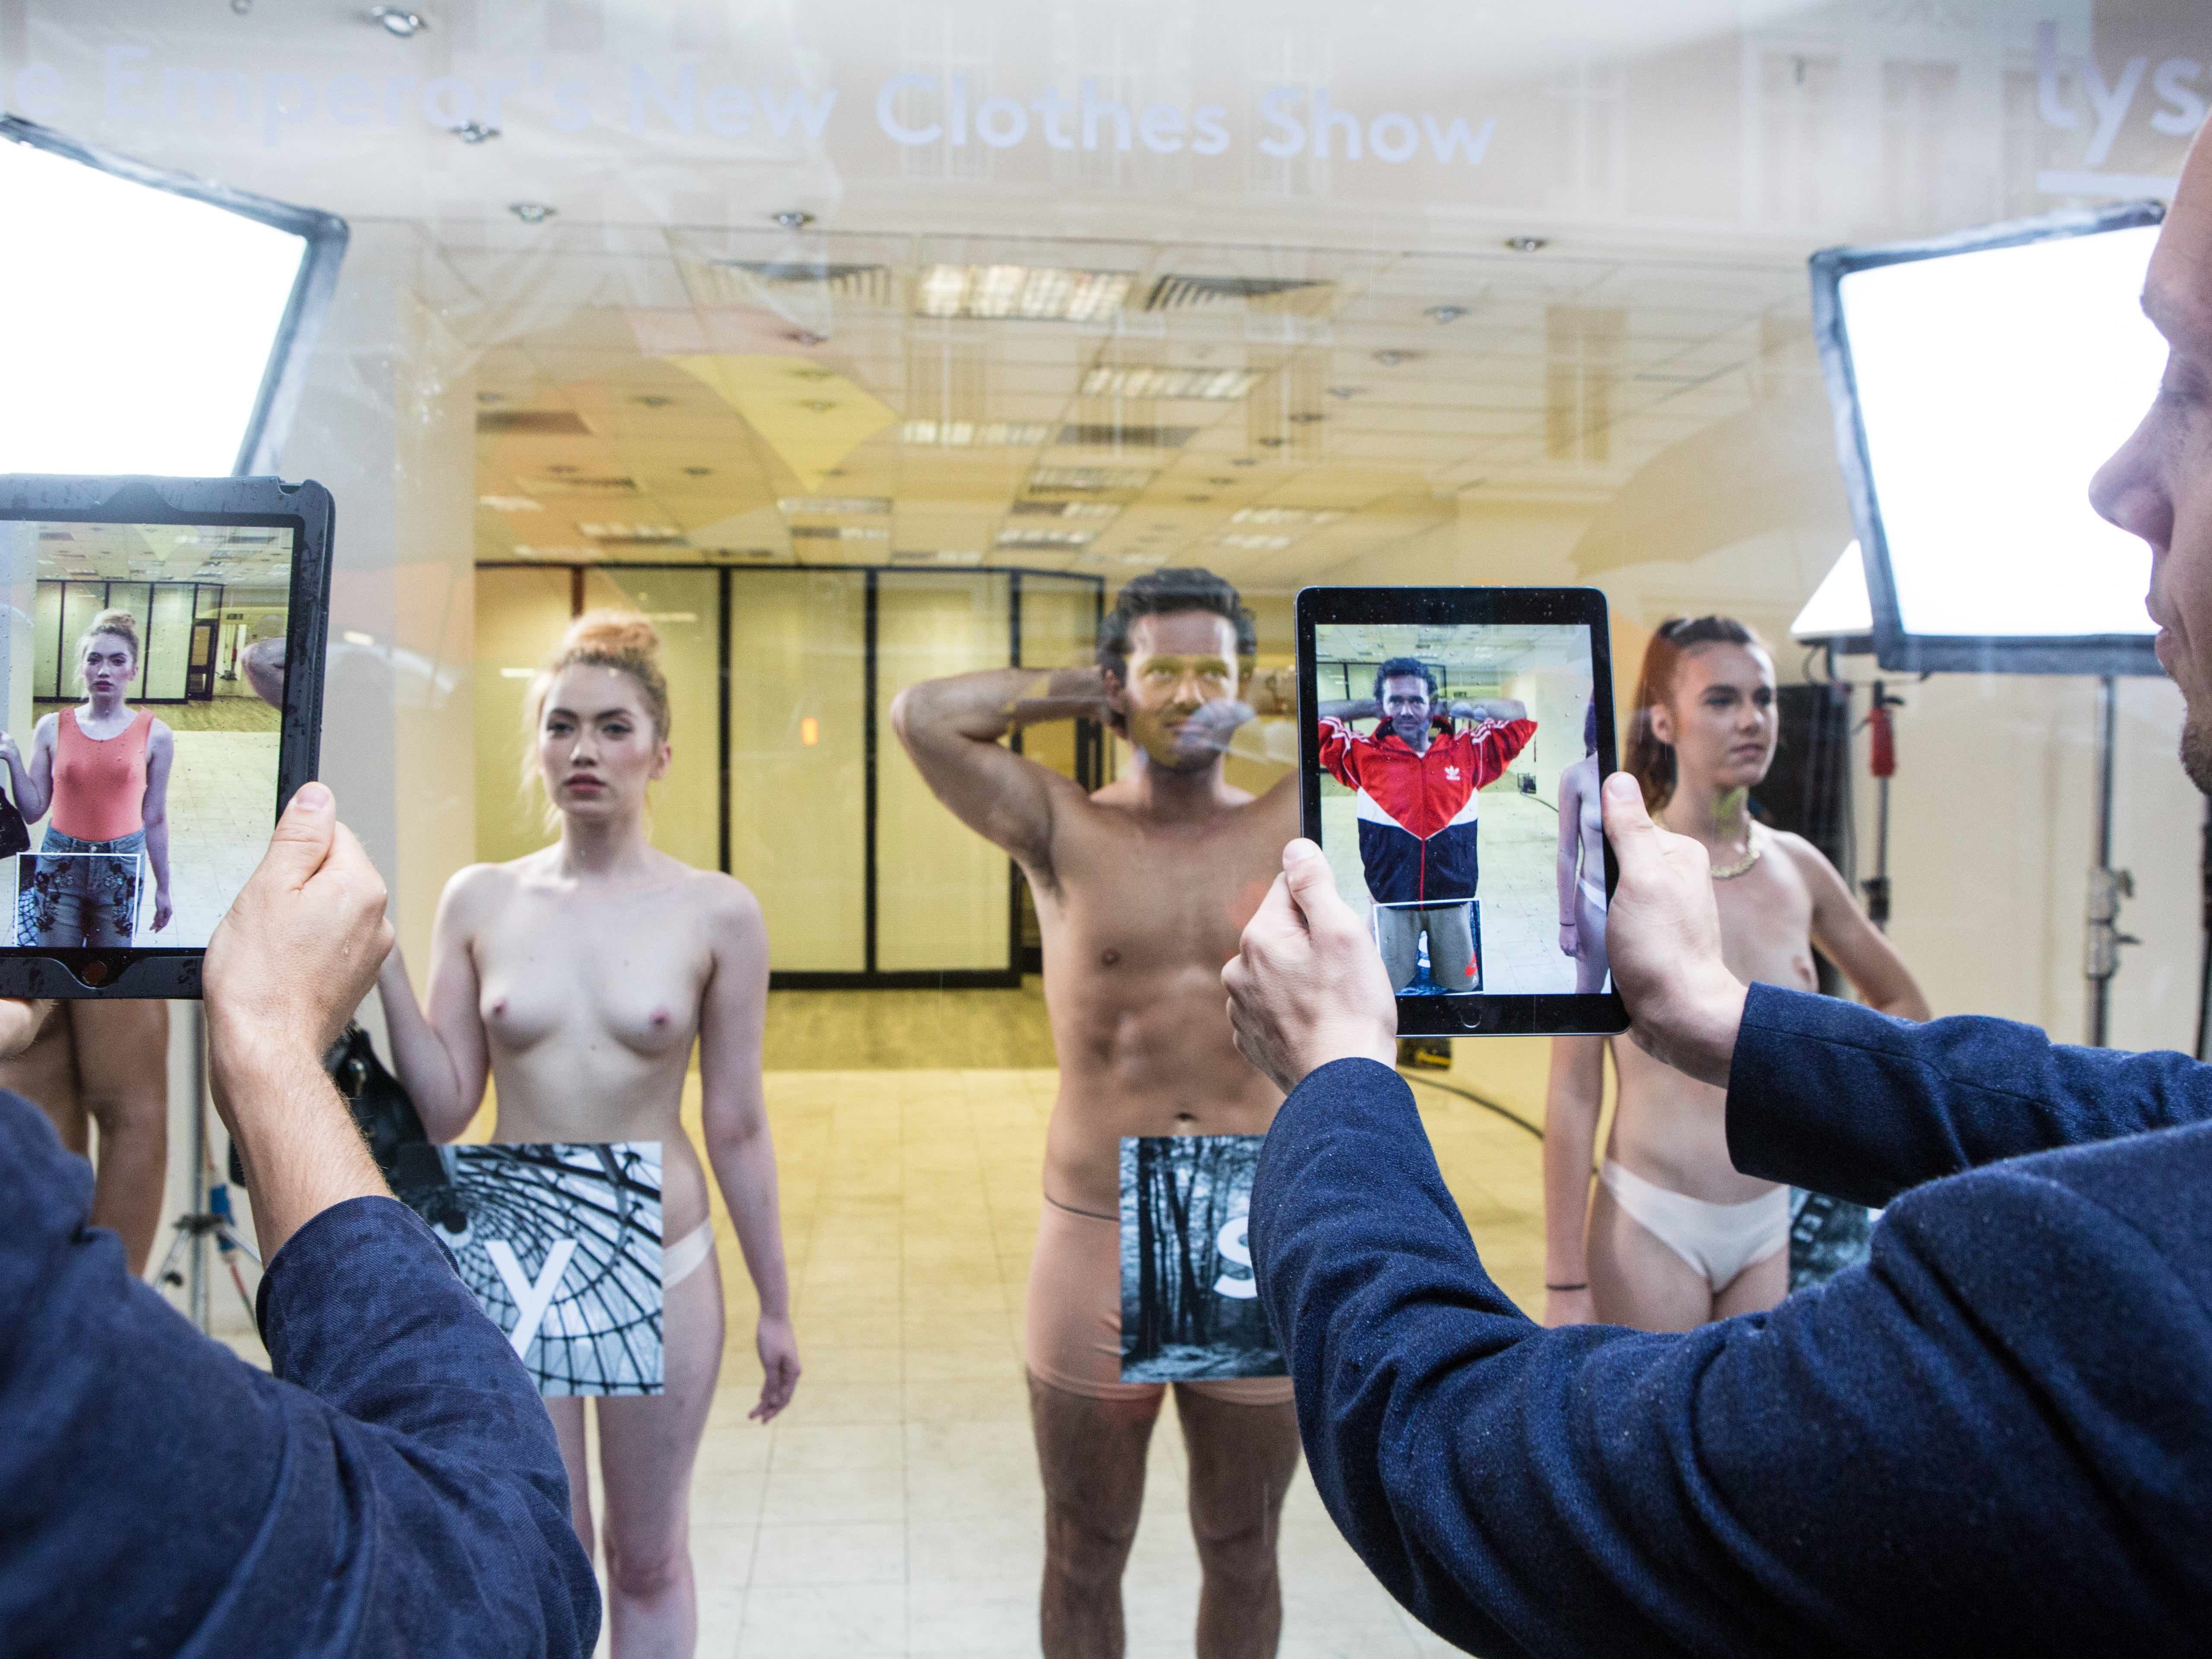 """Naked """"Hummanequins"""" Show the Future of A.R. at London Fashion Week"""